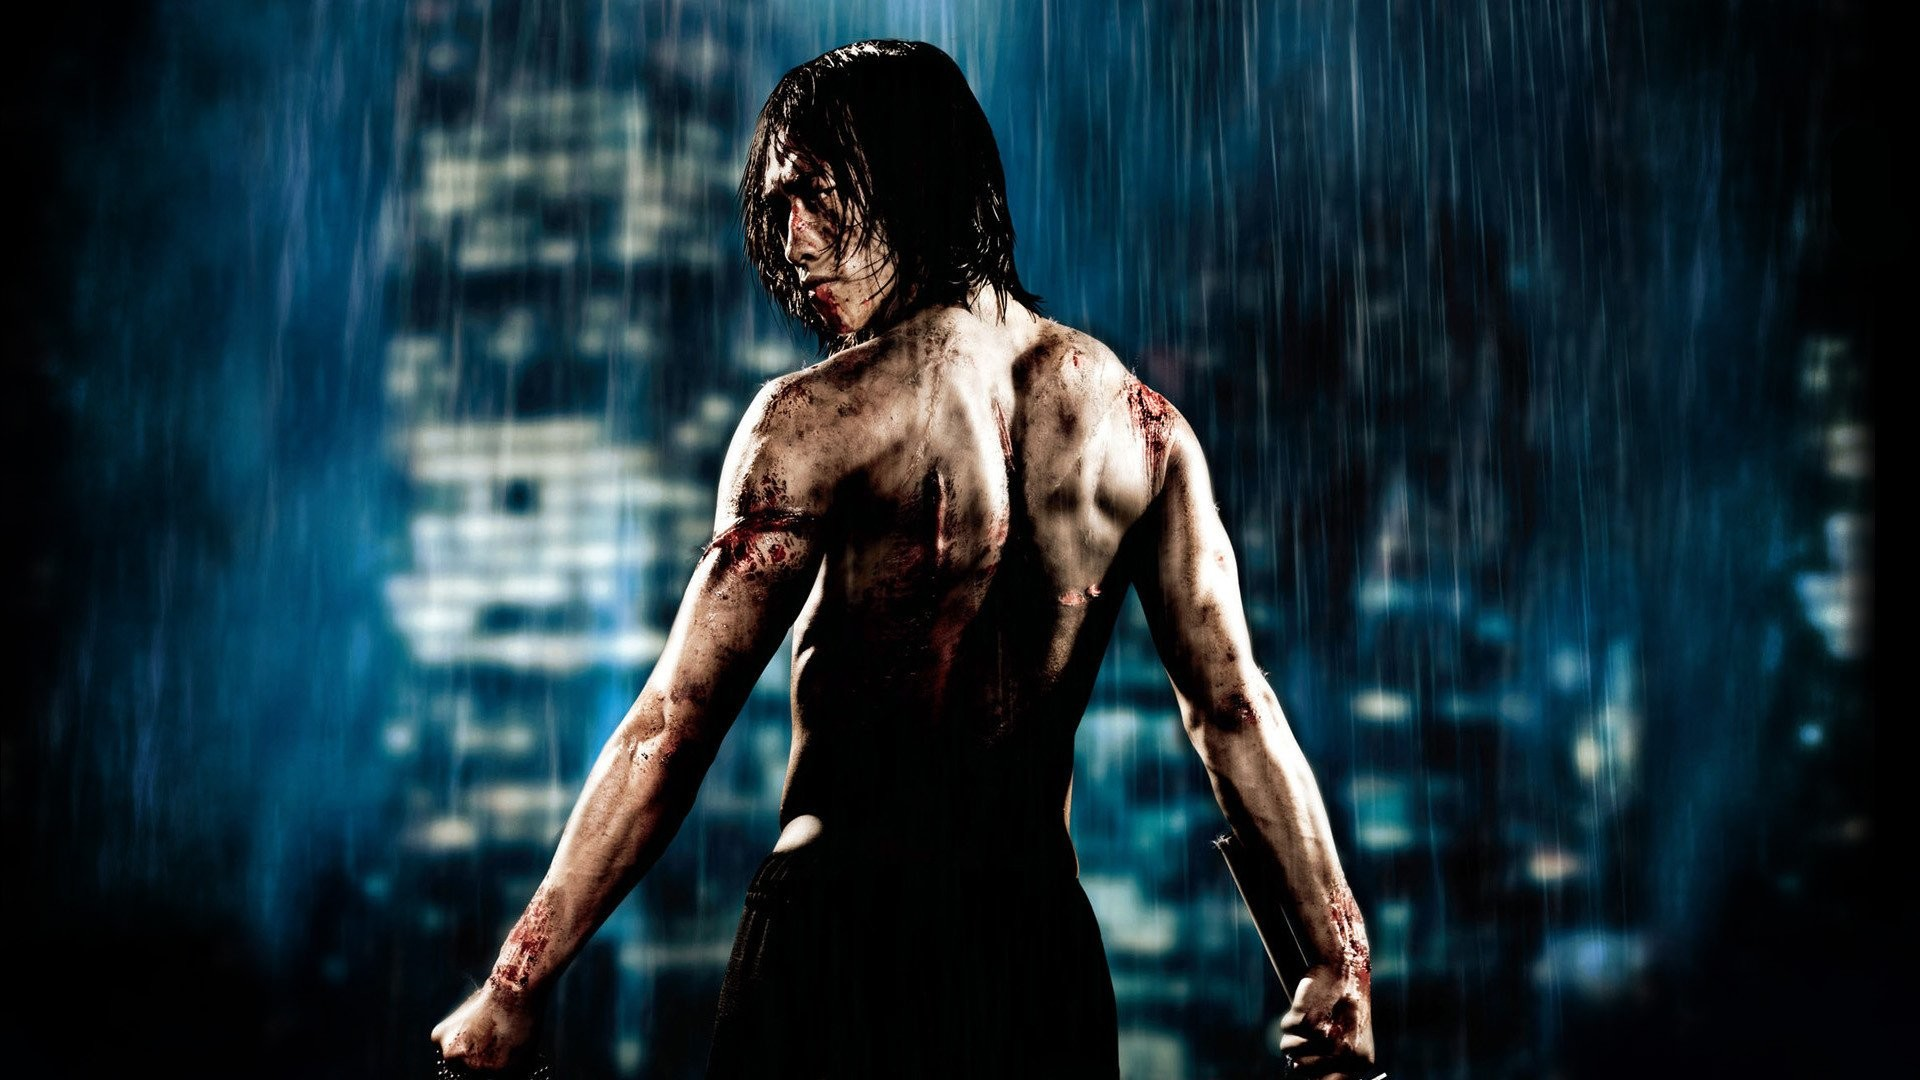 Res: 1920x1080, 5 Ninja Assassin HD Wallpapers | Backgrounds - Wallpaper Abyss